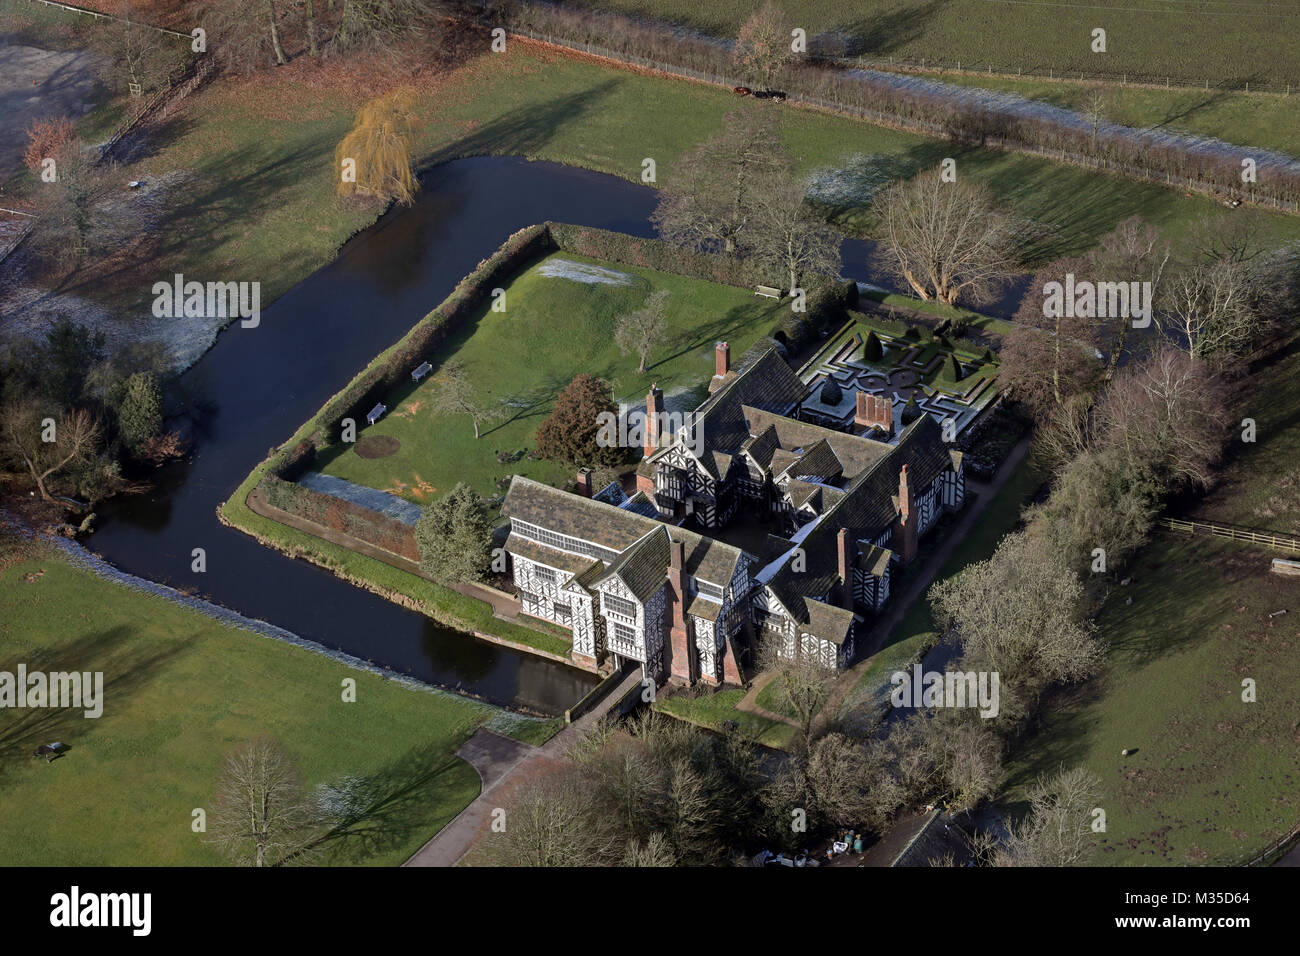 aerial view of Little Moreton Hall from over 1500' up, Cheshire, UK - Stock Image